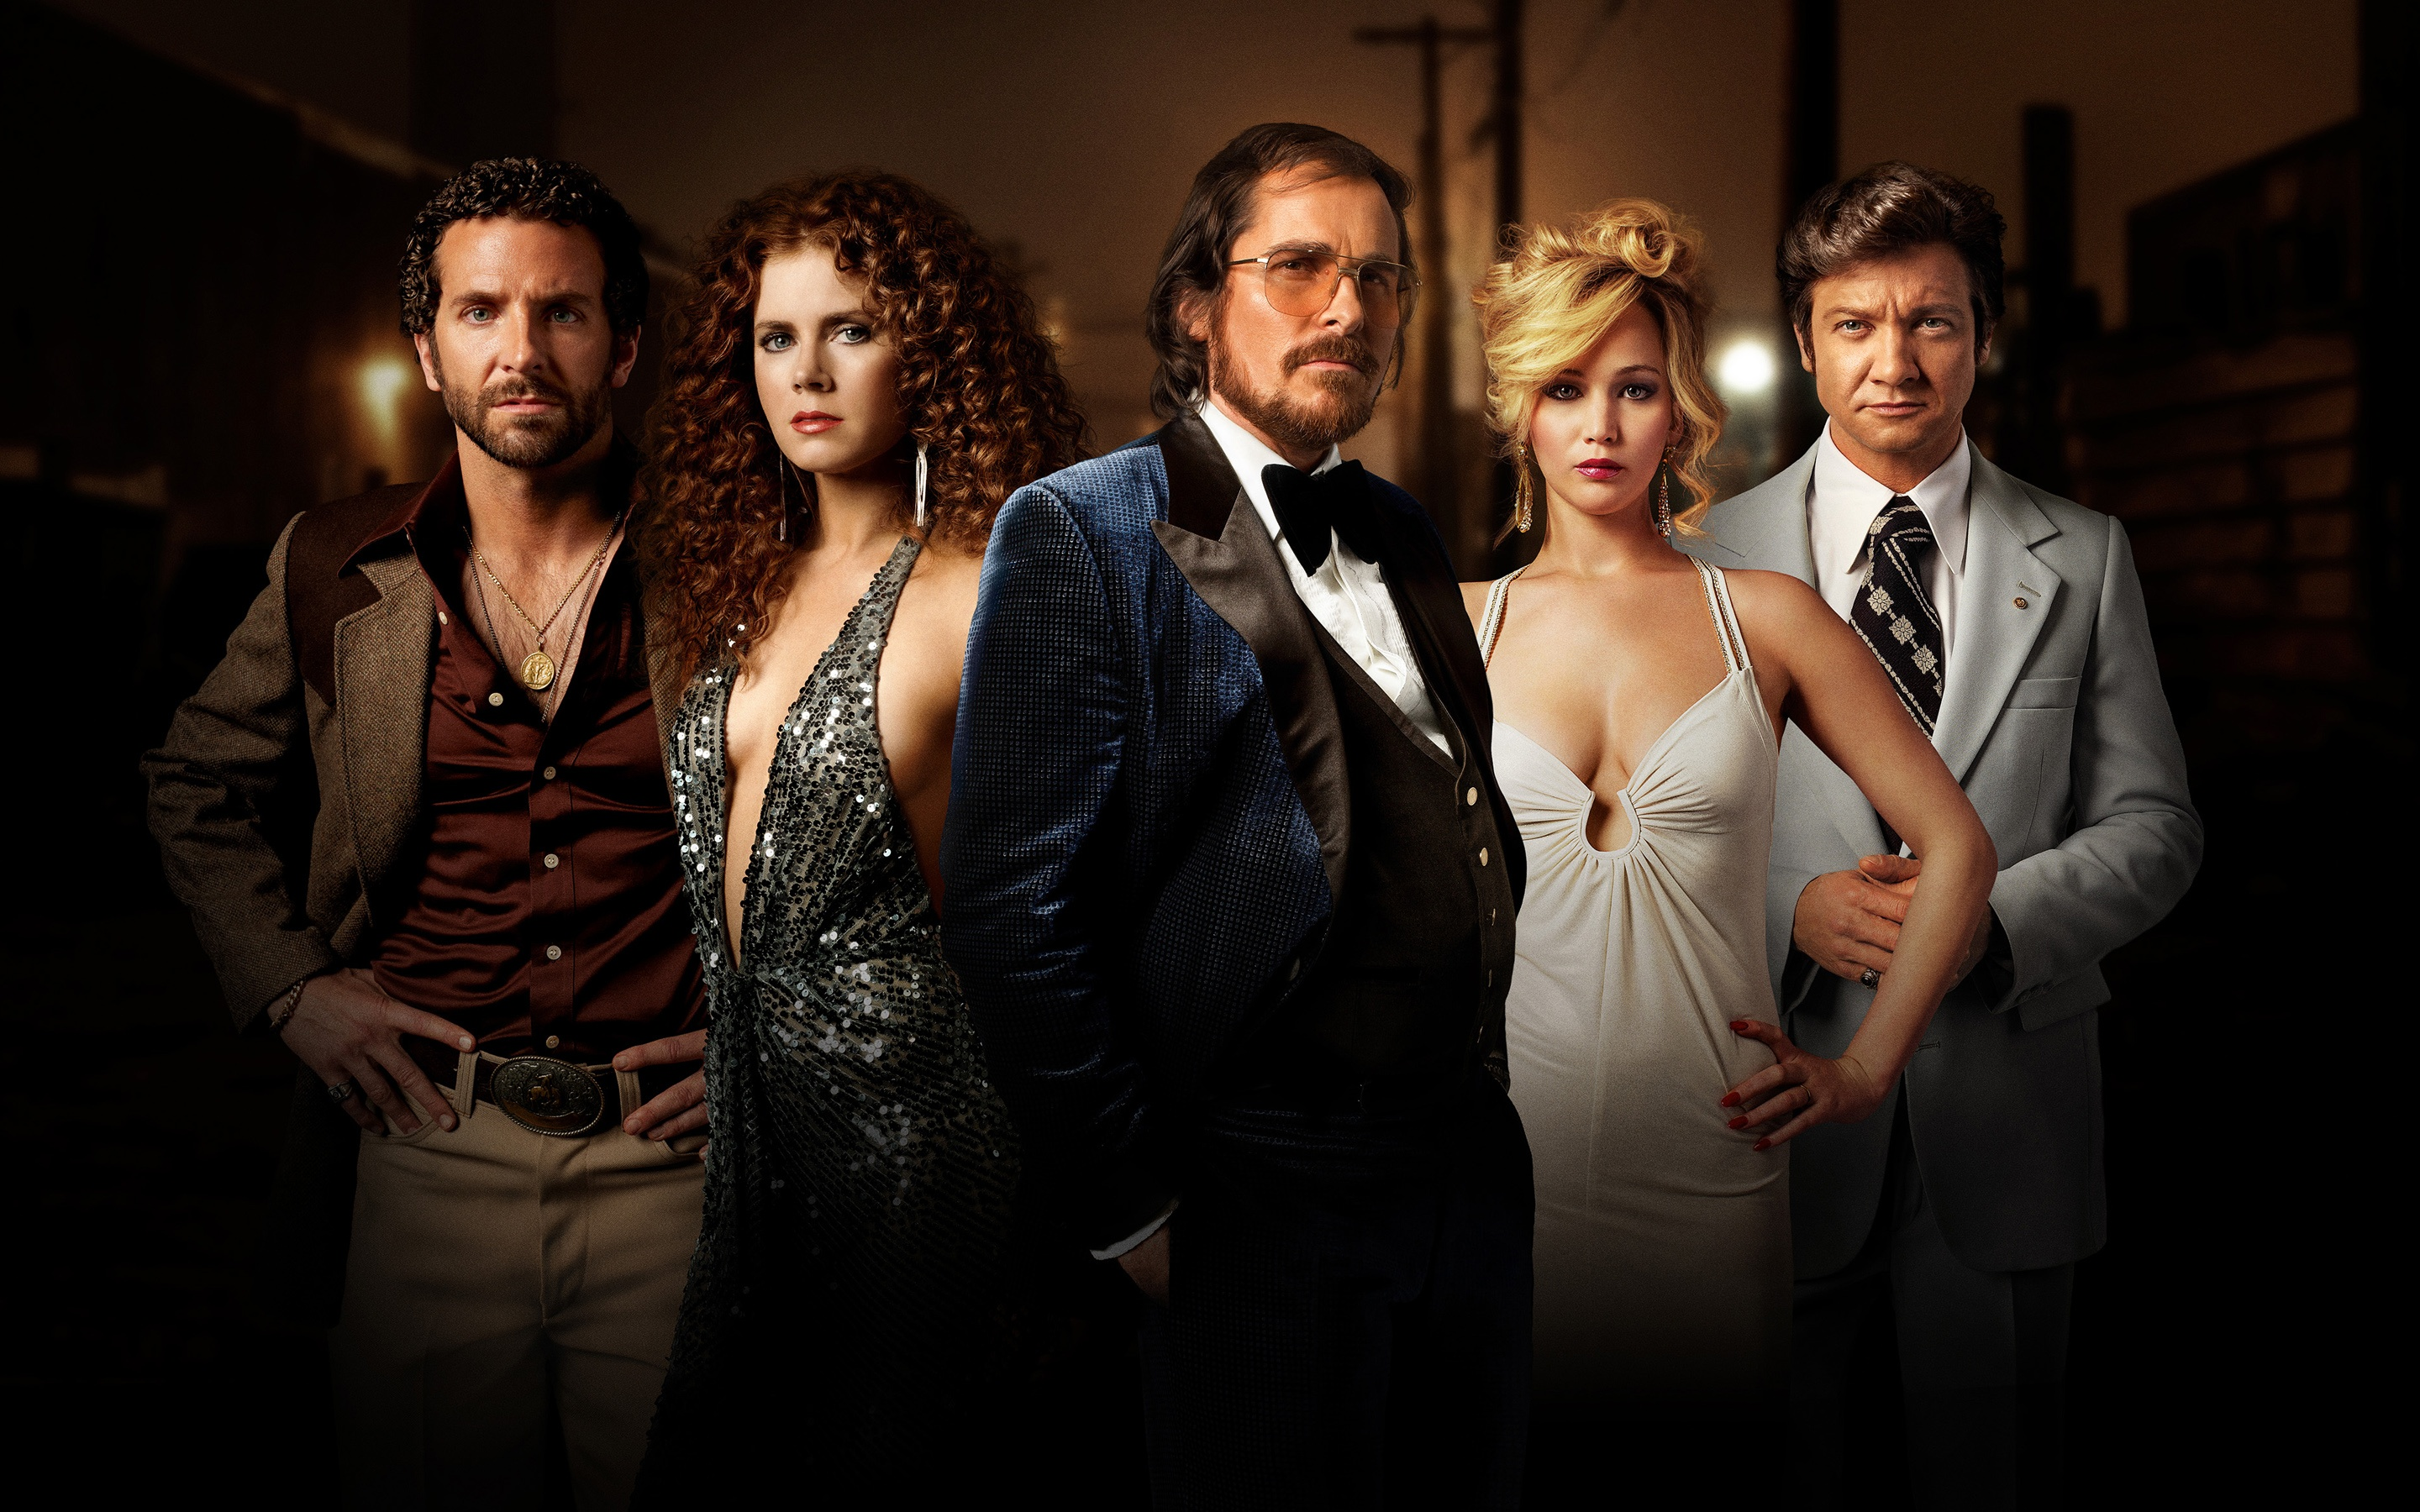 american_hustle_movie-2880x1800